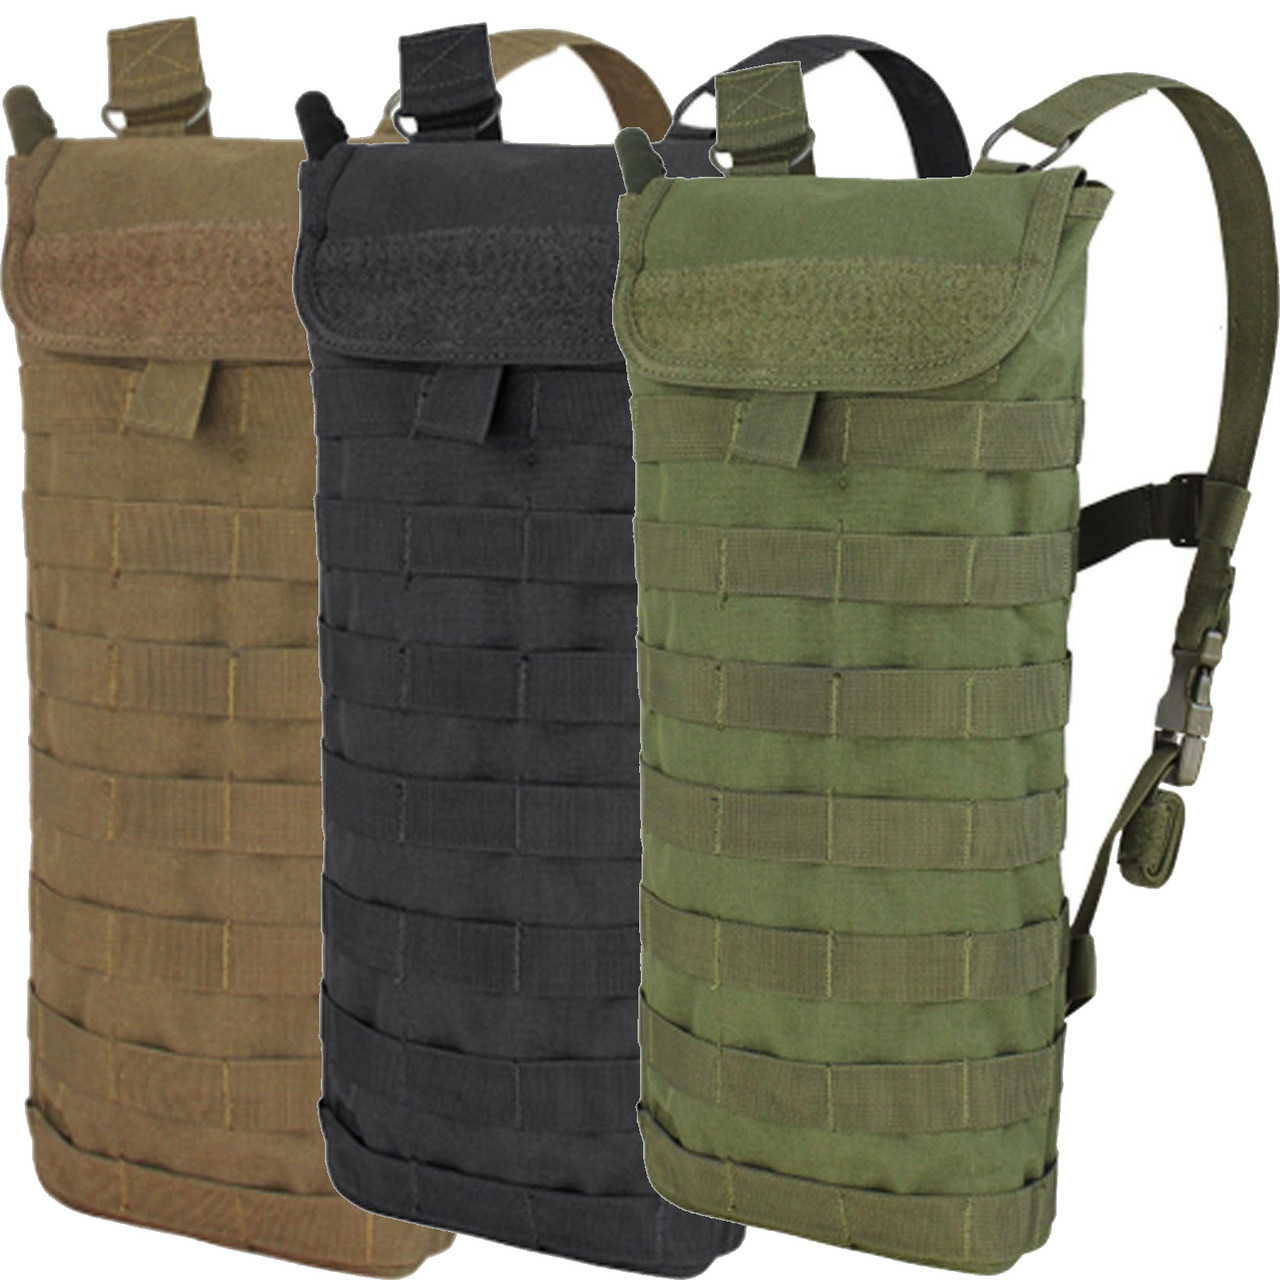 Molle Oasis Hydration Backpack Water Carrier with 2.5 L Bladder OD GREEN